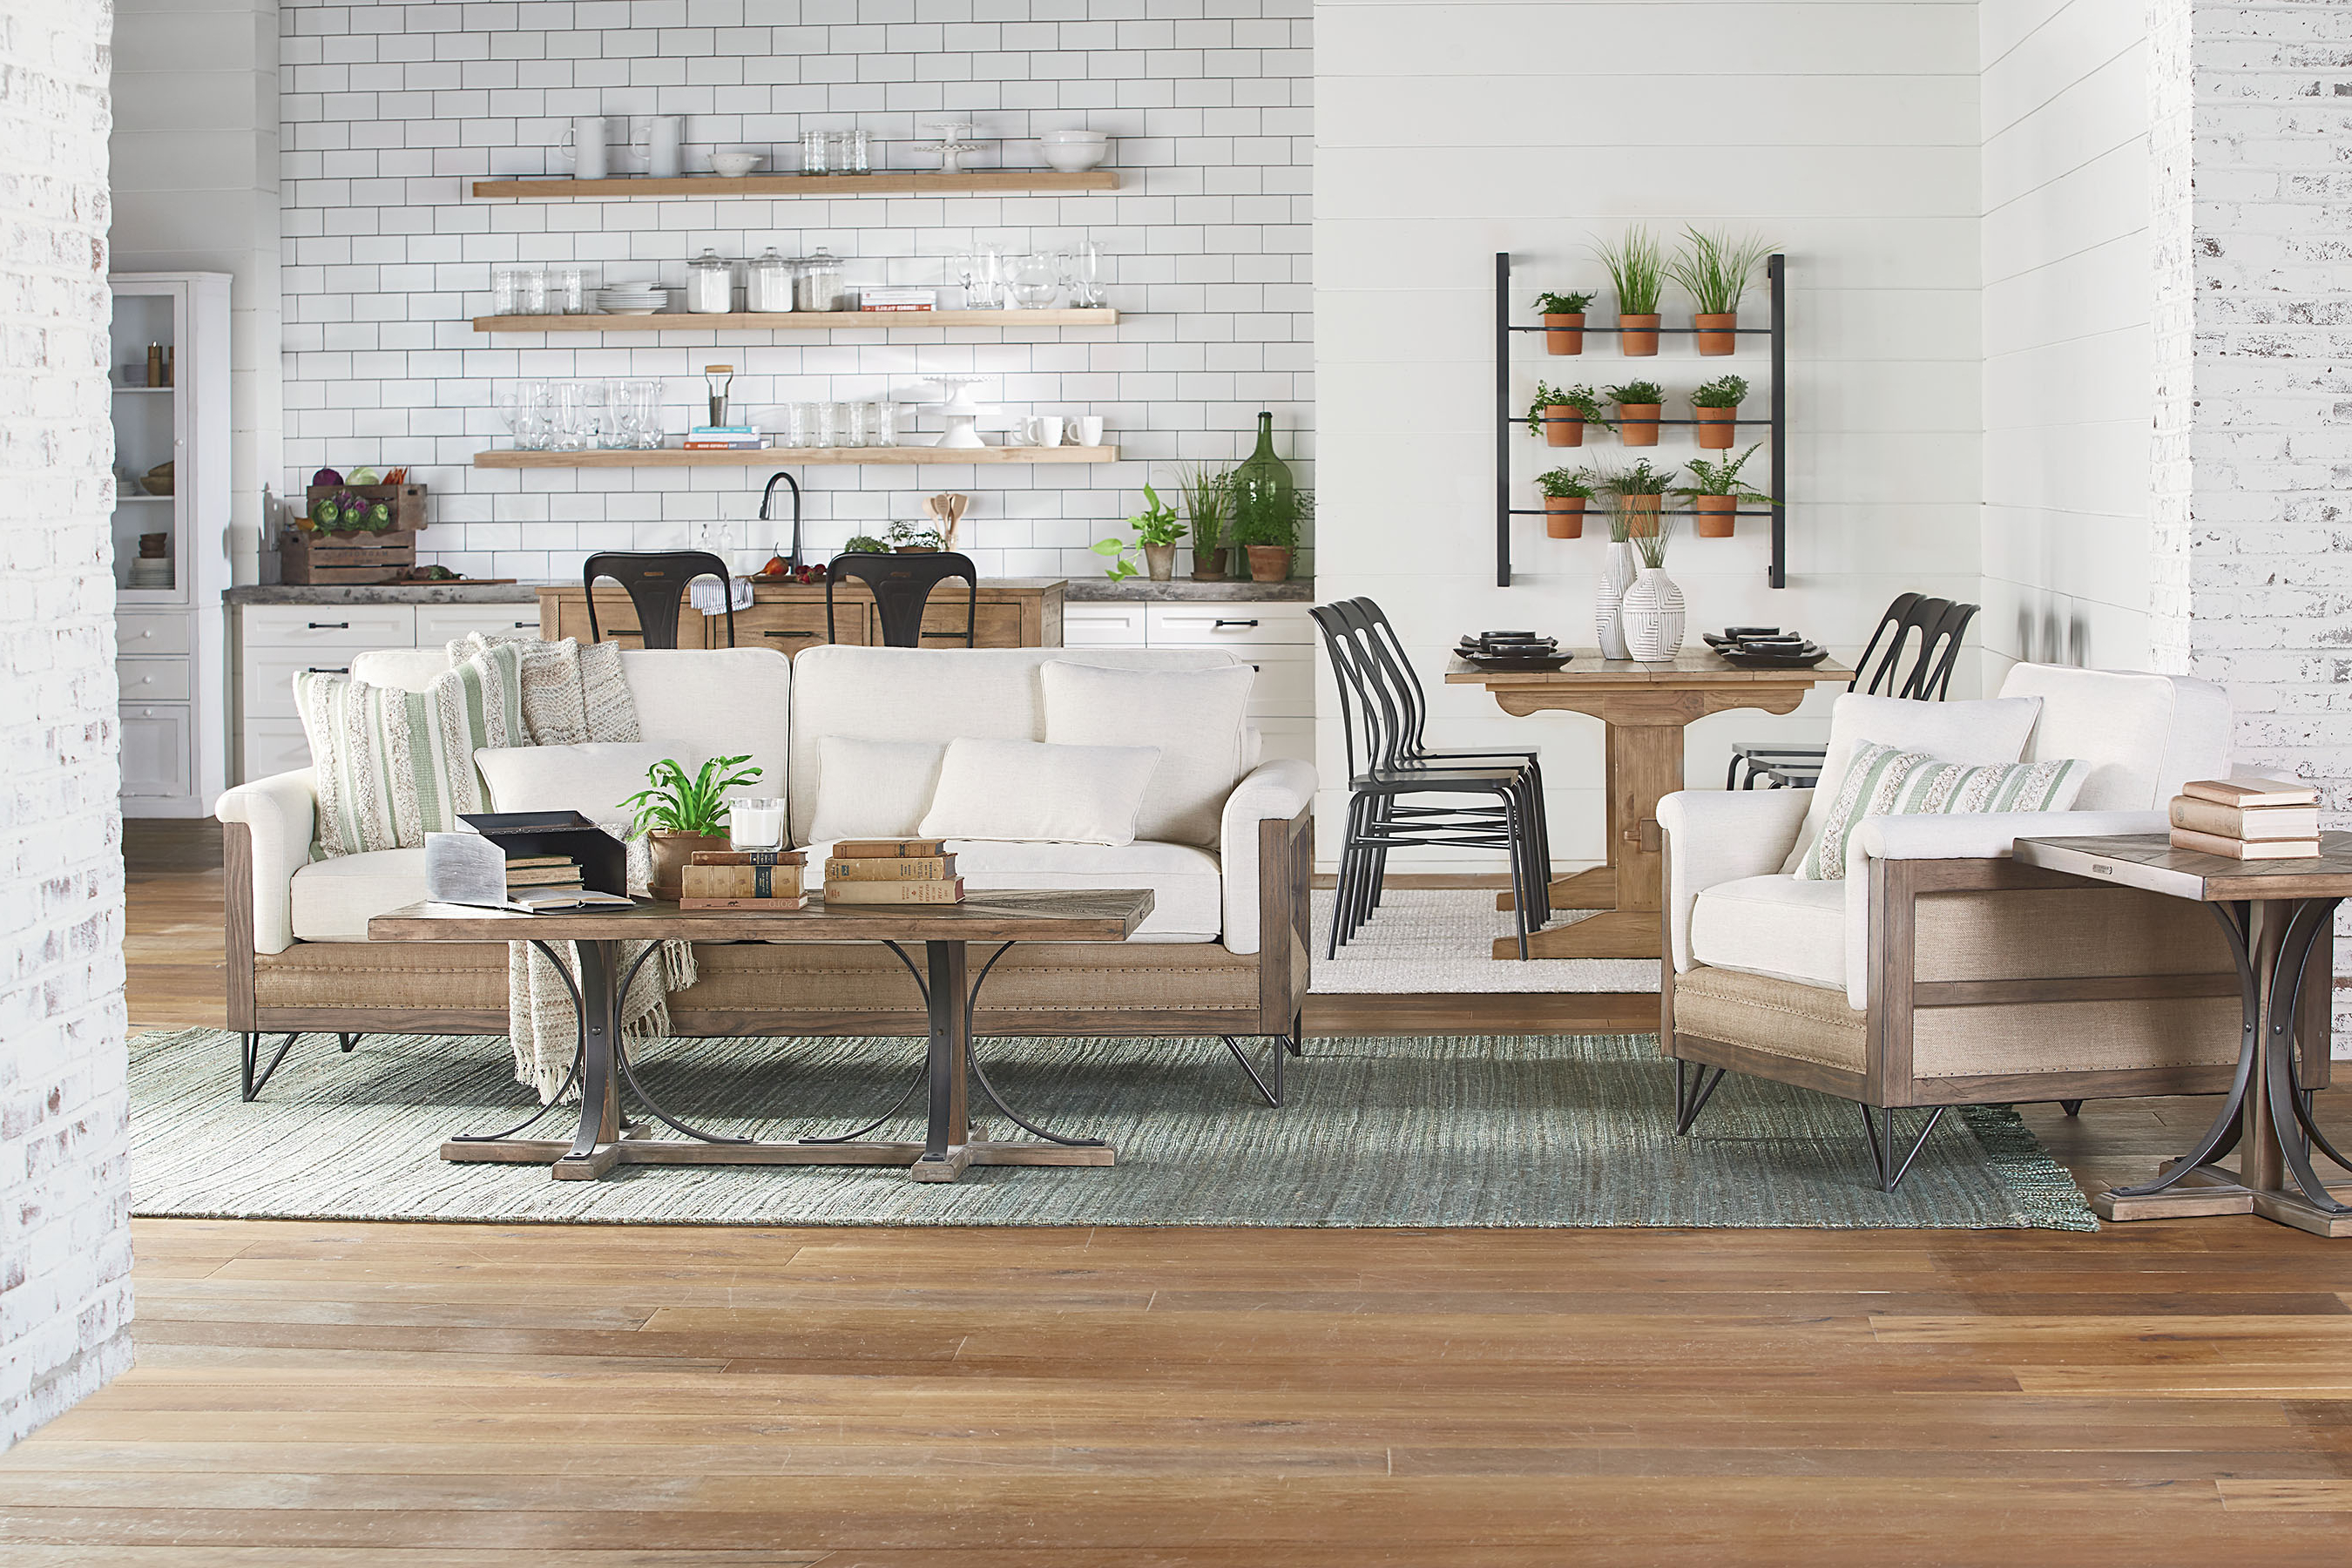 Magnolia Home Paradigm Sofa Chairs By Joanna Gaines In 2019 Paradigm Sofa – Magnolia Home (View 10 of 20)